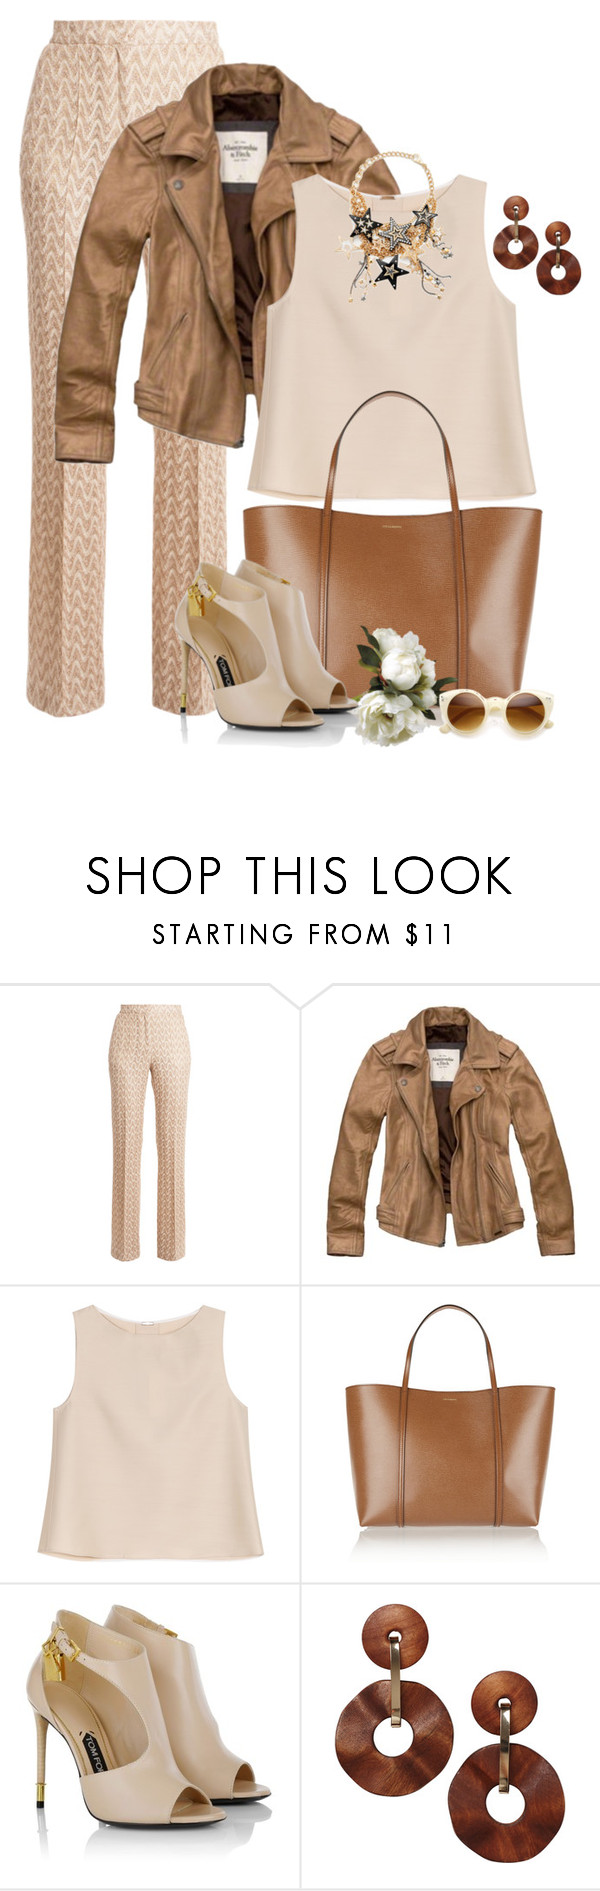 """""""Delicious"""" by lisa-holt ❤ liked on Polyvore featuring Missoni, Abercrombie & Fitch, ADAM, Dolce&Gabbana, Tom Ford, Monki and Retrò"""